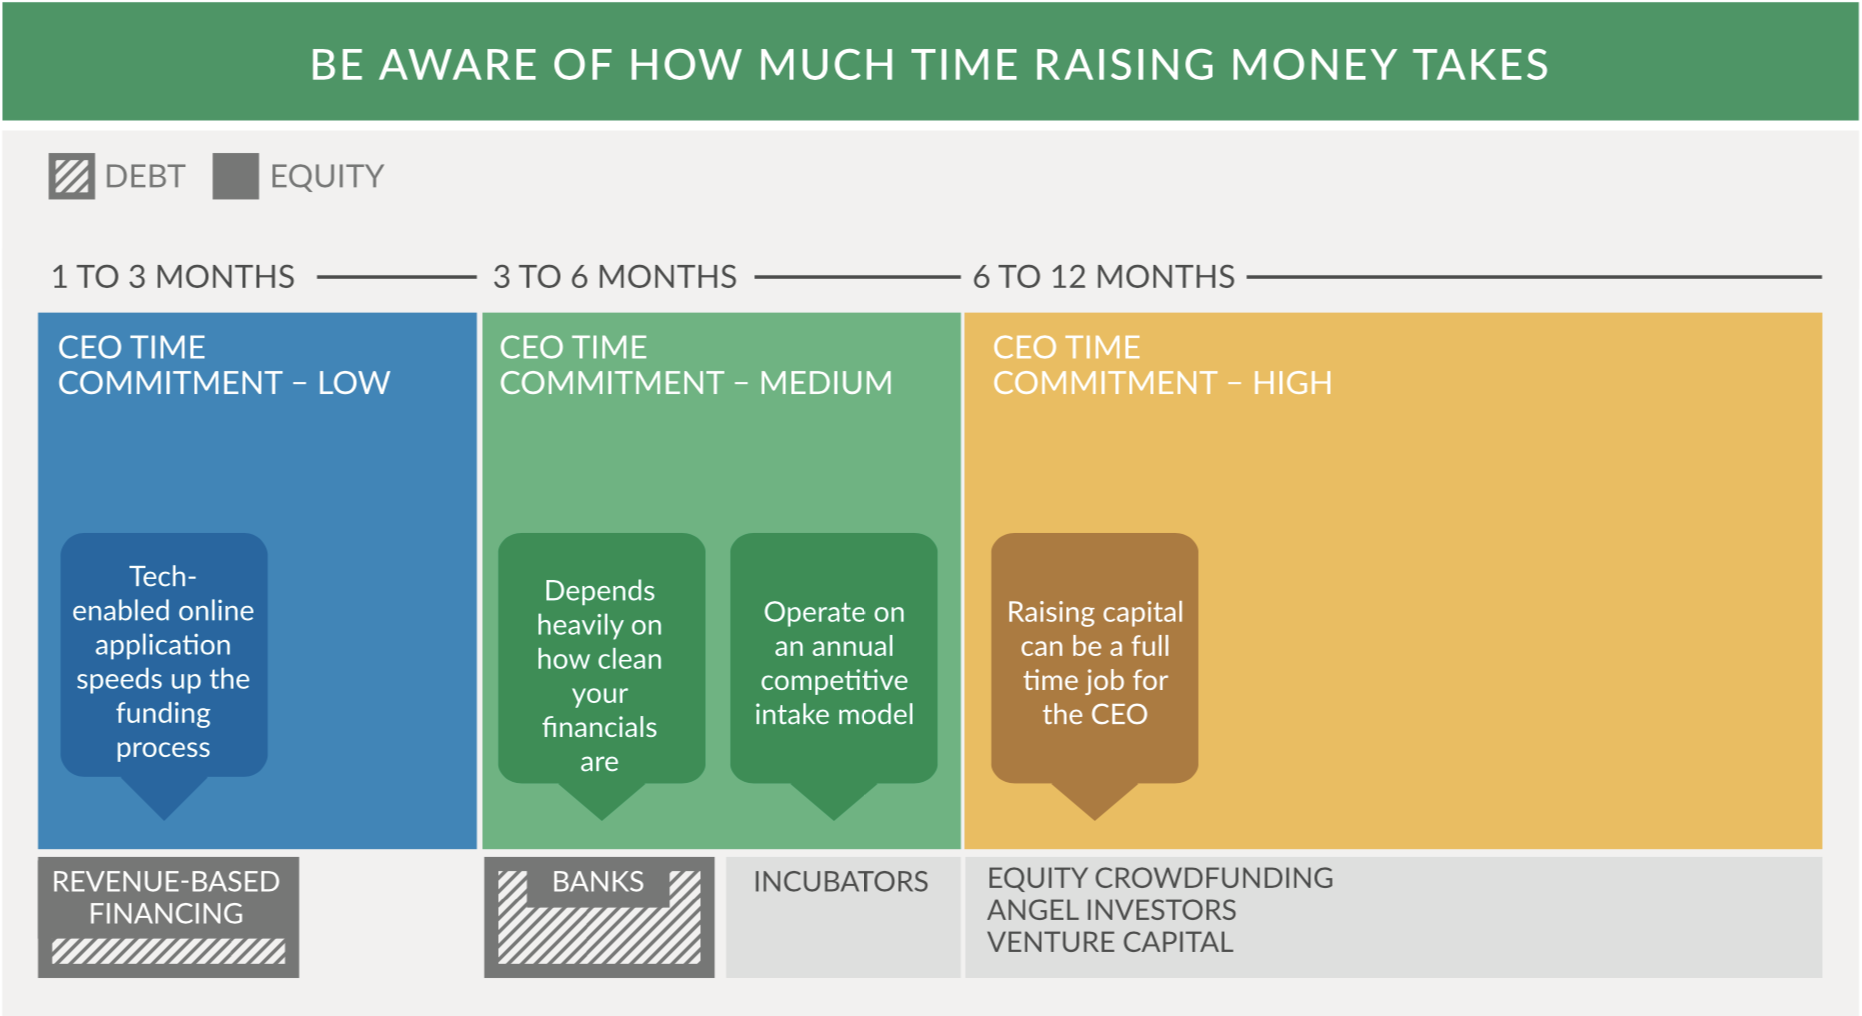 Be aware of how much time raising money takes